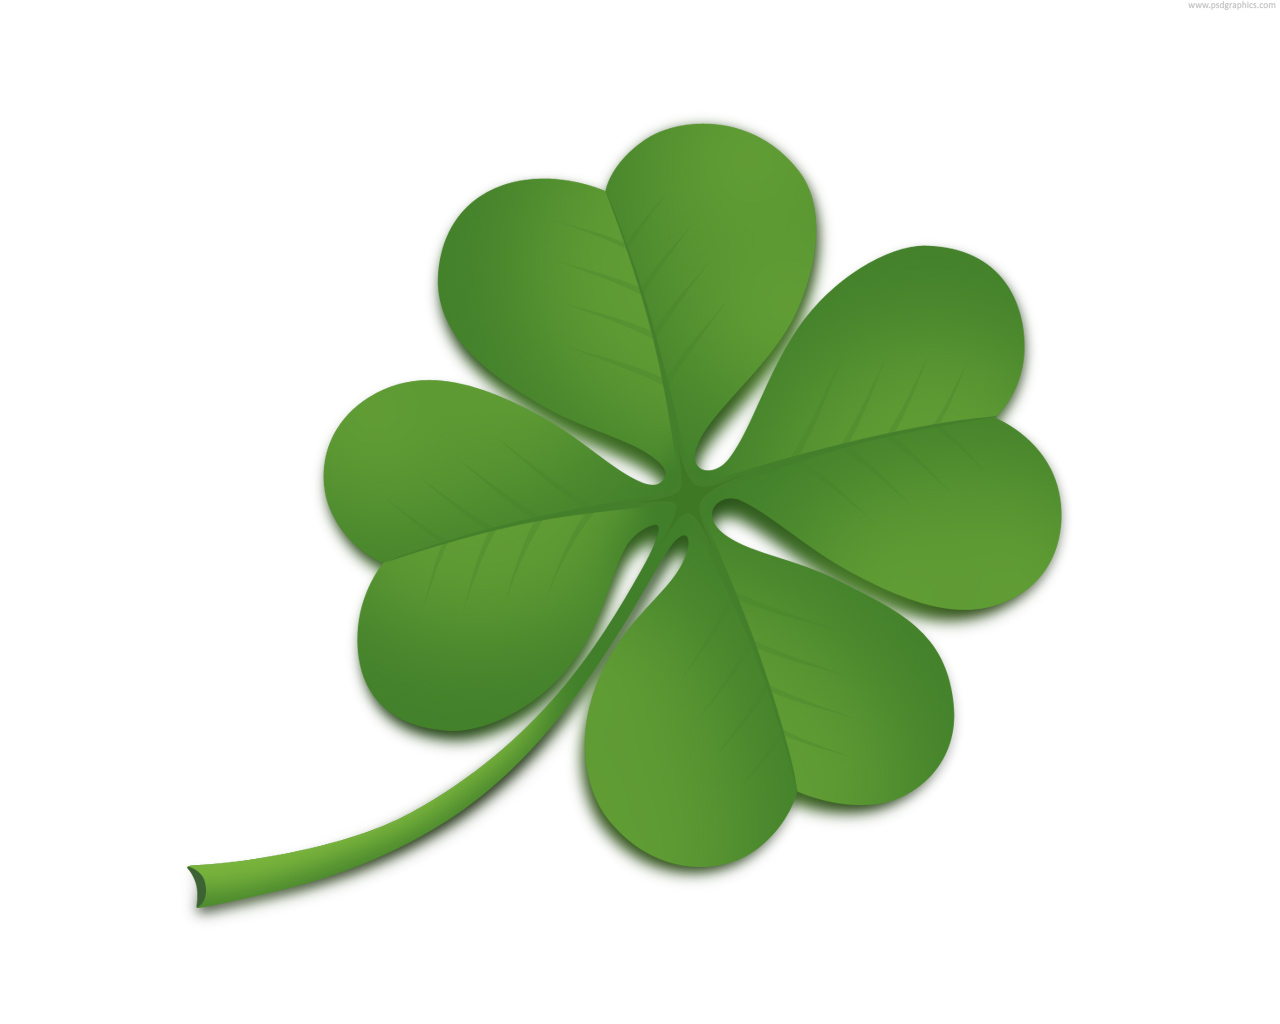 Three leaf clover meaning clipart png transparent stock Free 4 Leaf Clover, Download Free Clip Art, Free Clip Art on ... png transparent stock